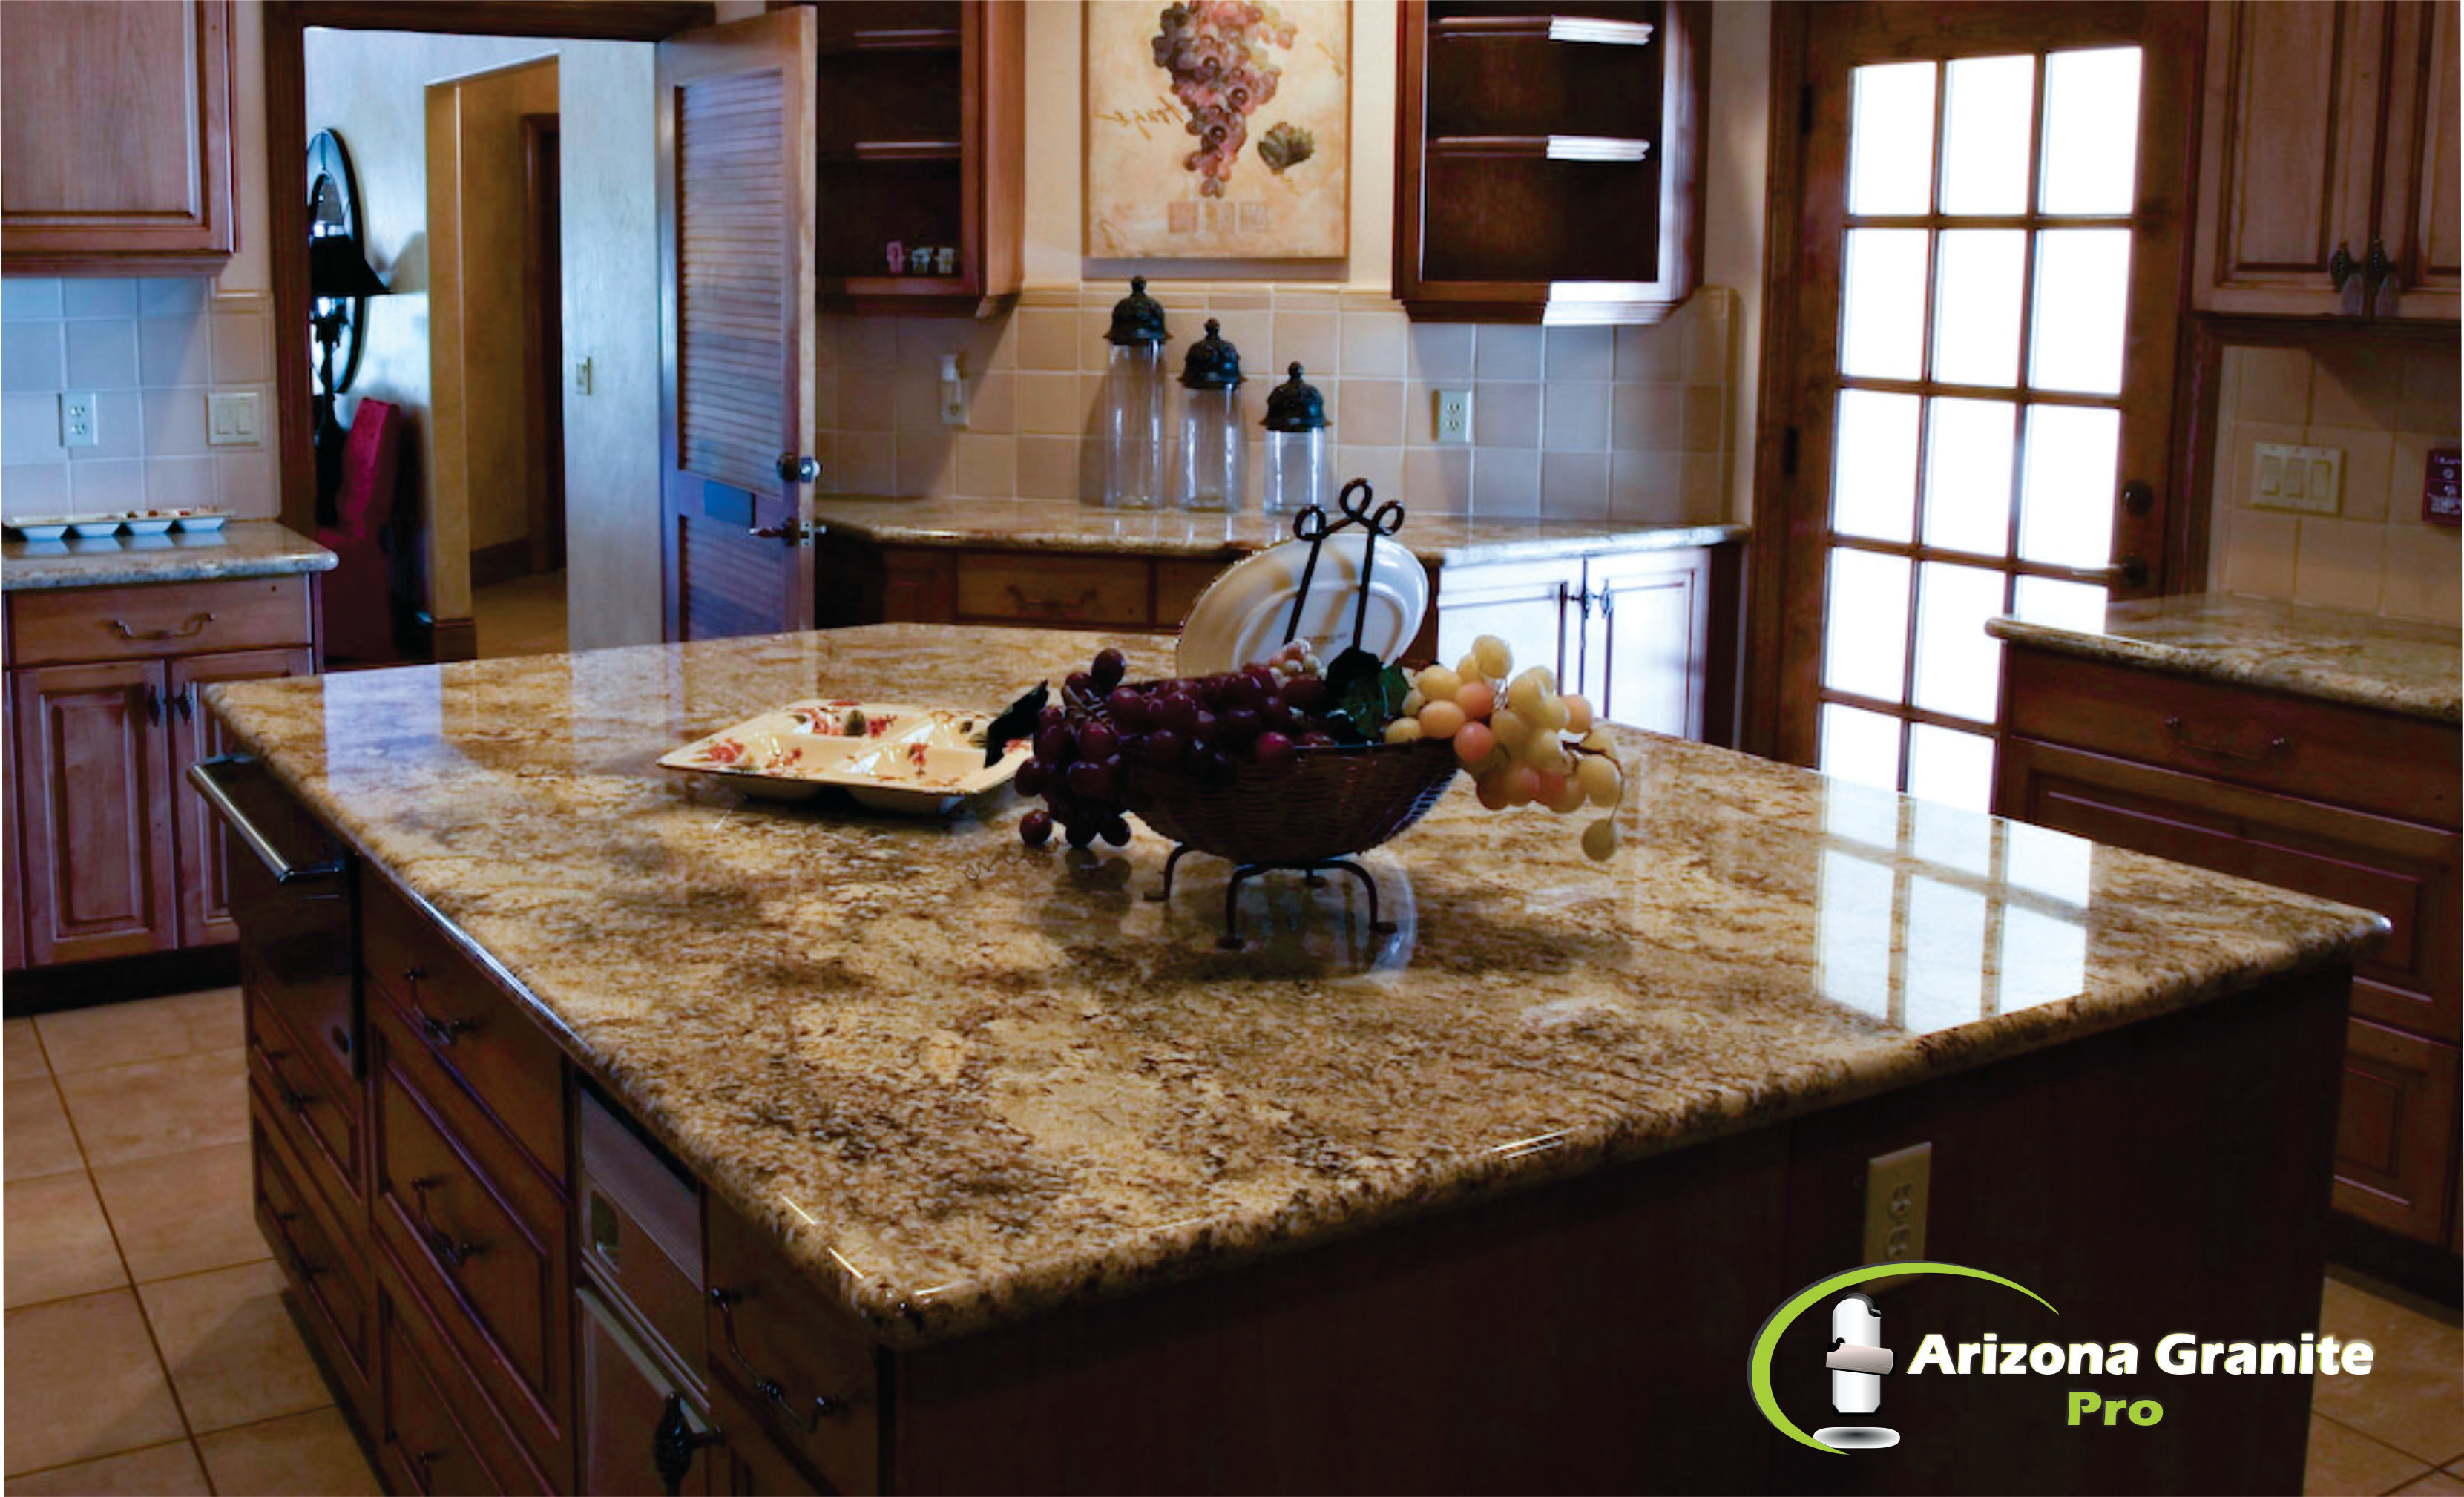 Granite-Countertops-Arizonagranitepro.7